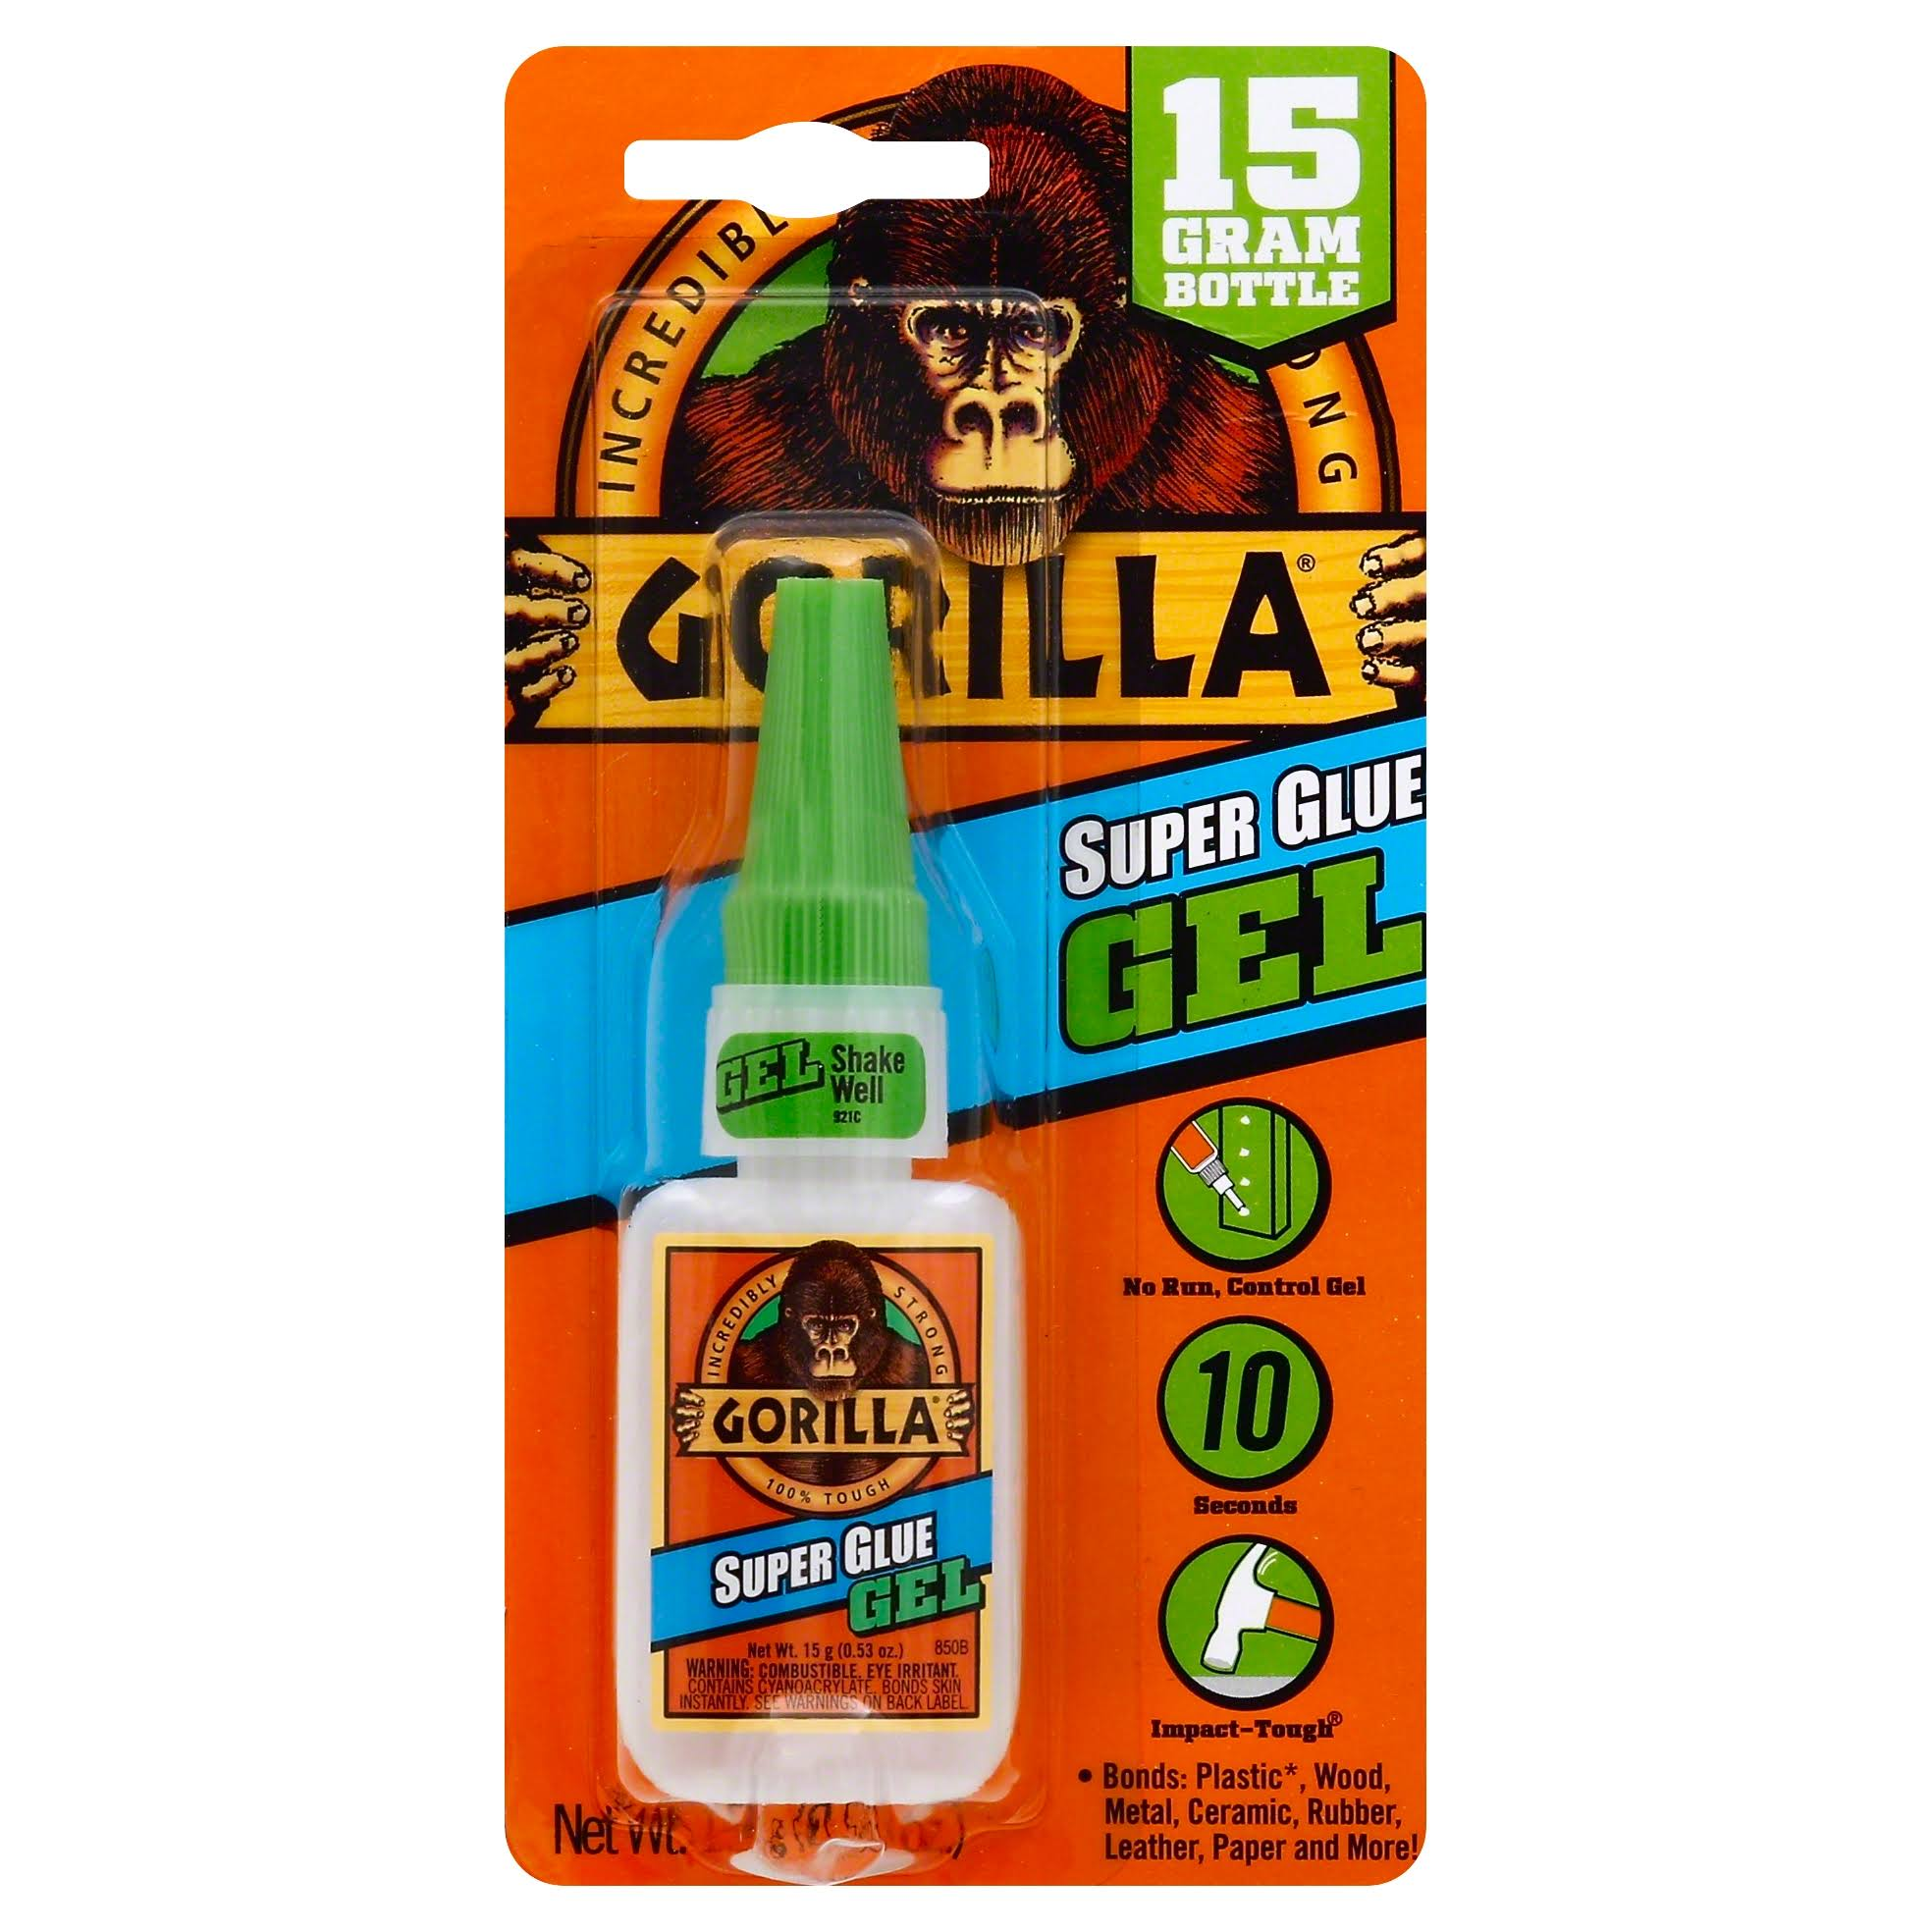 Gorilla Super Glue Gel - 15g